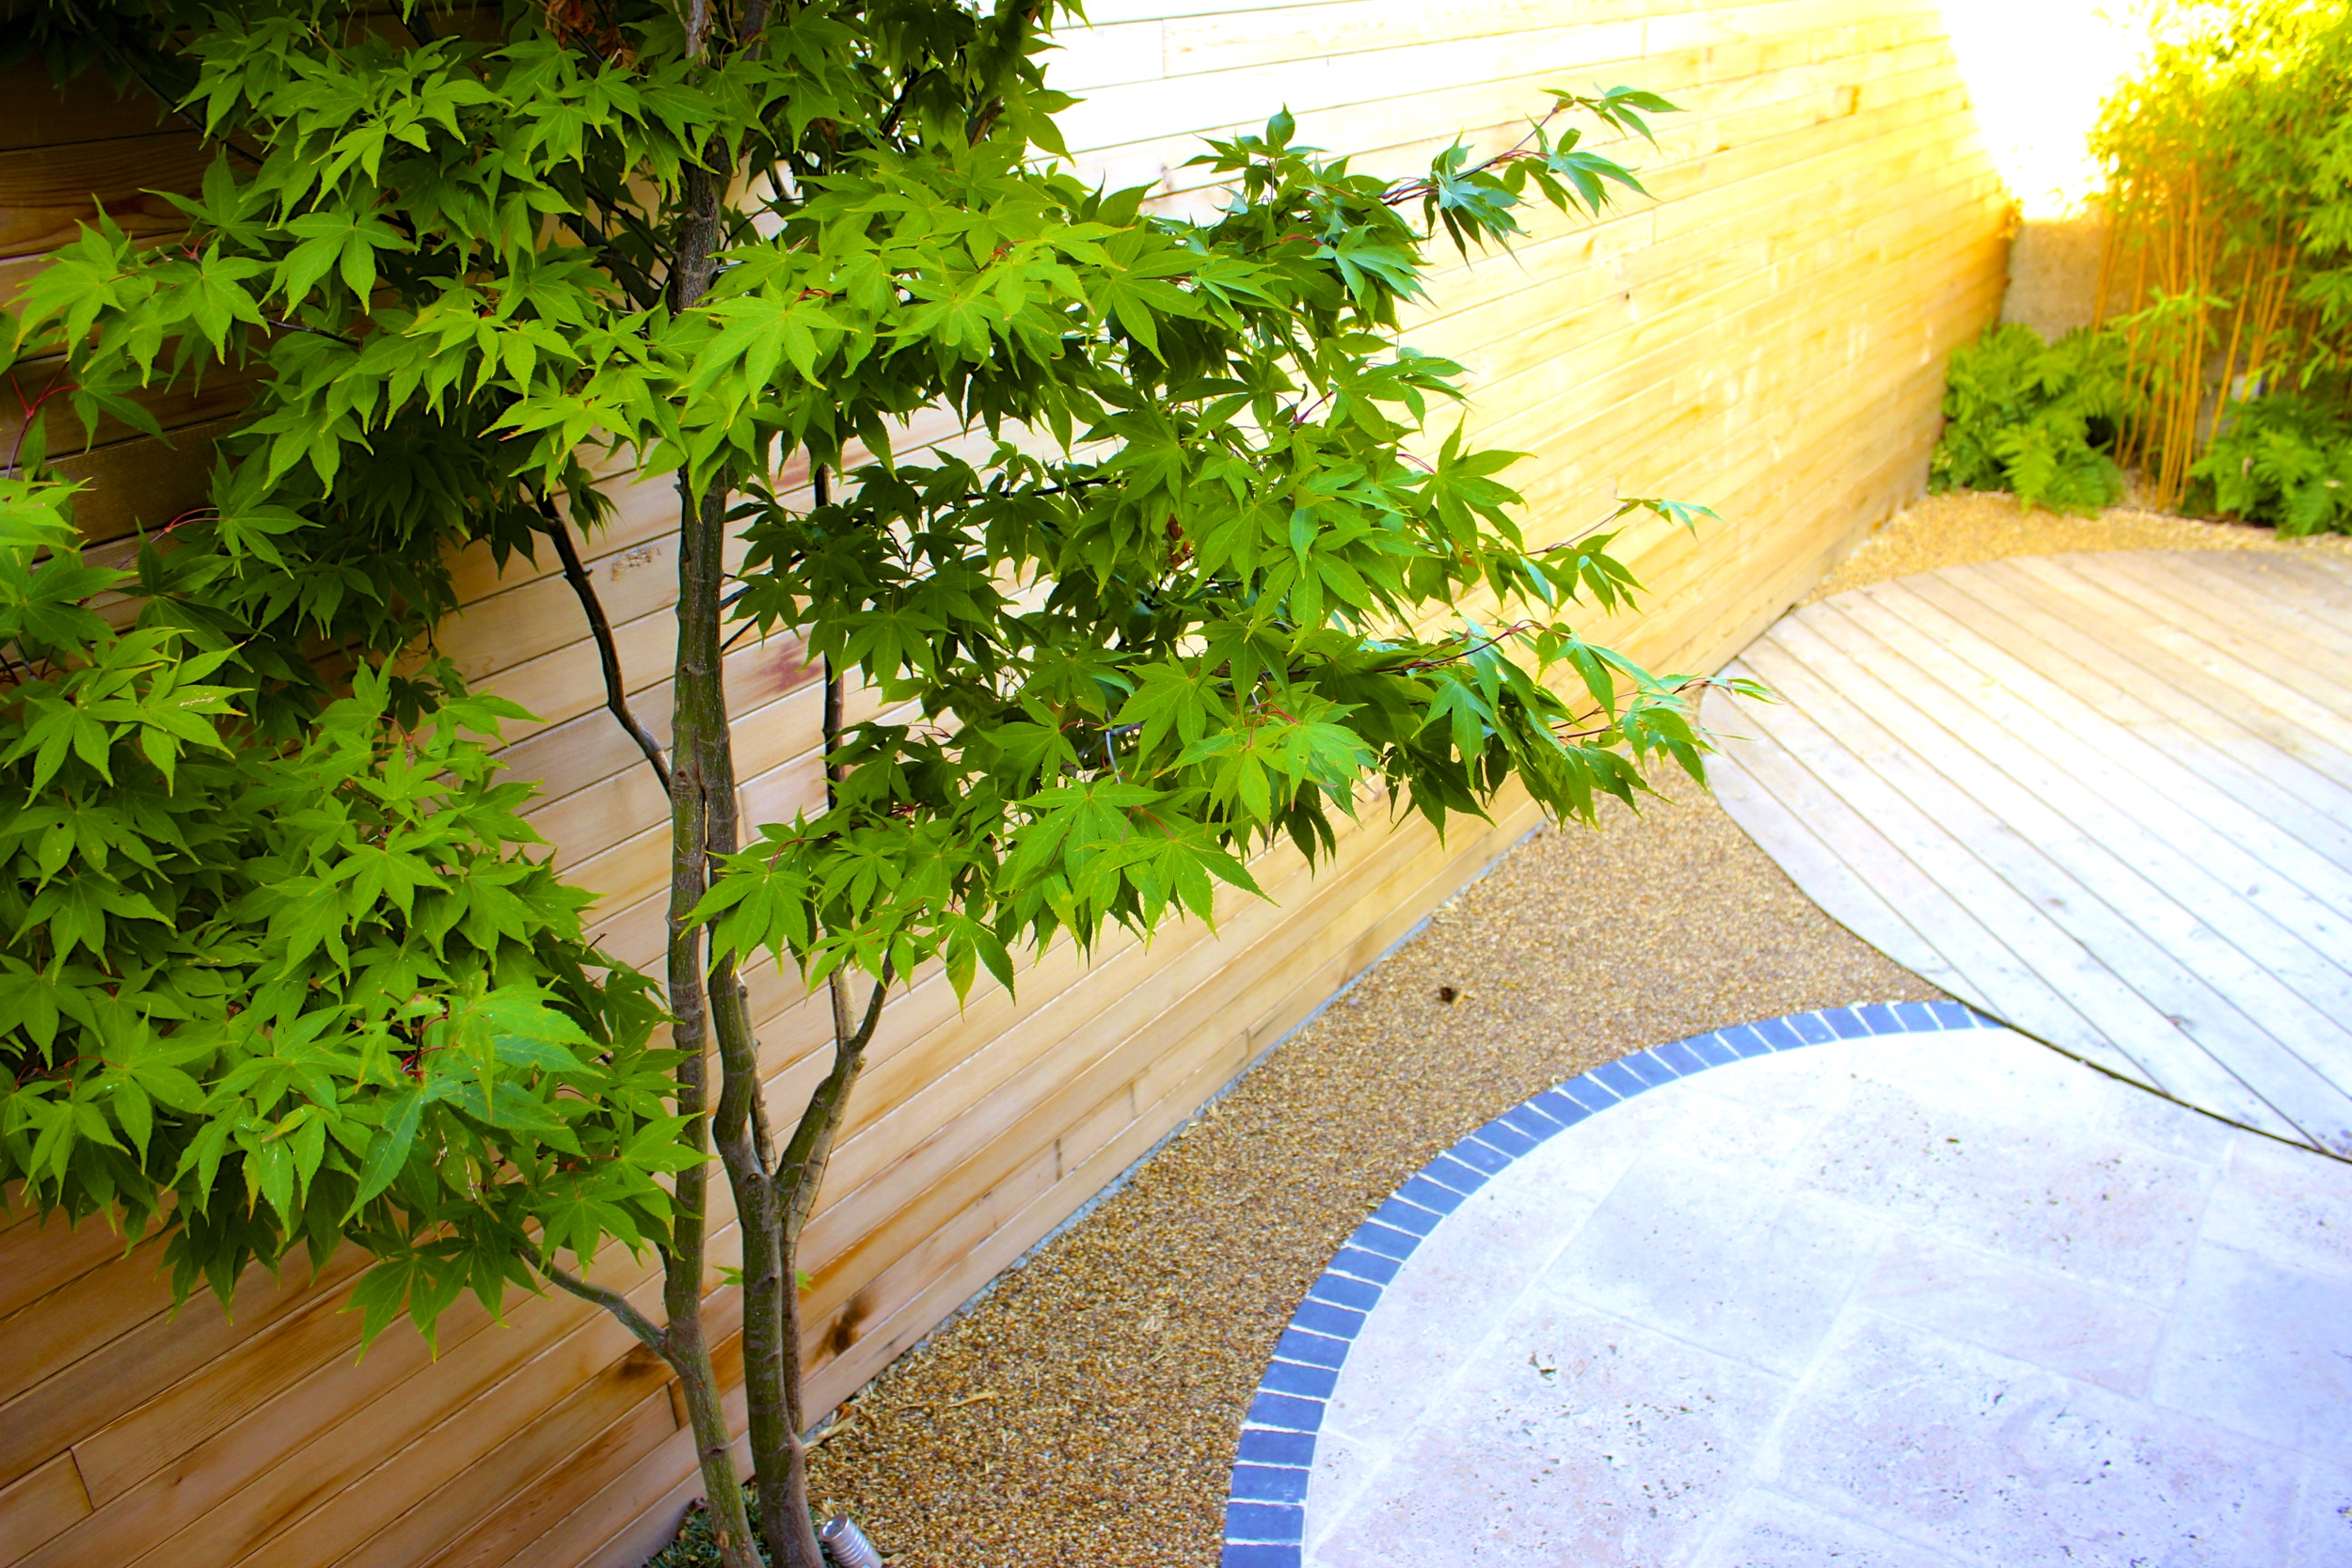 Maple Tree and paving stone